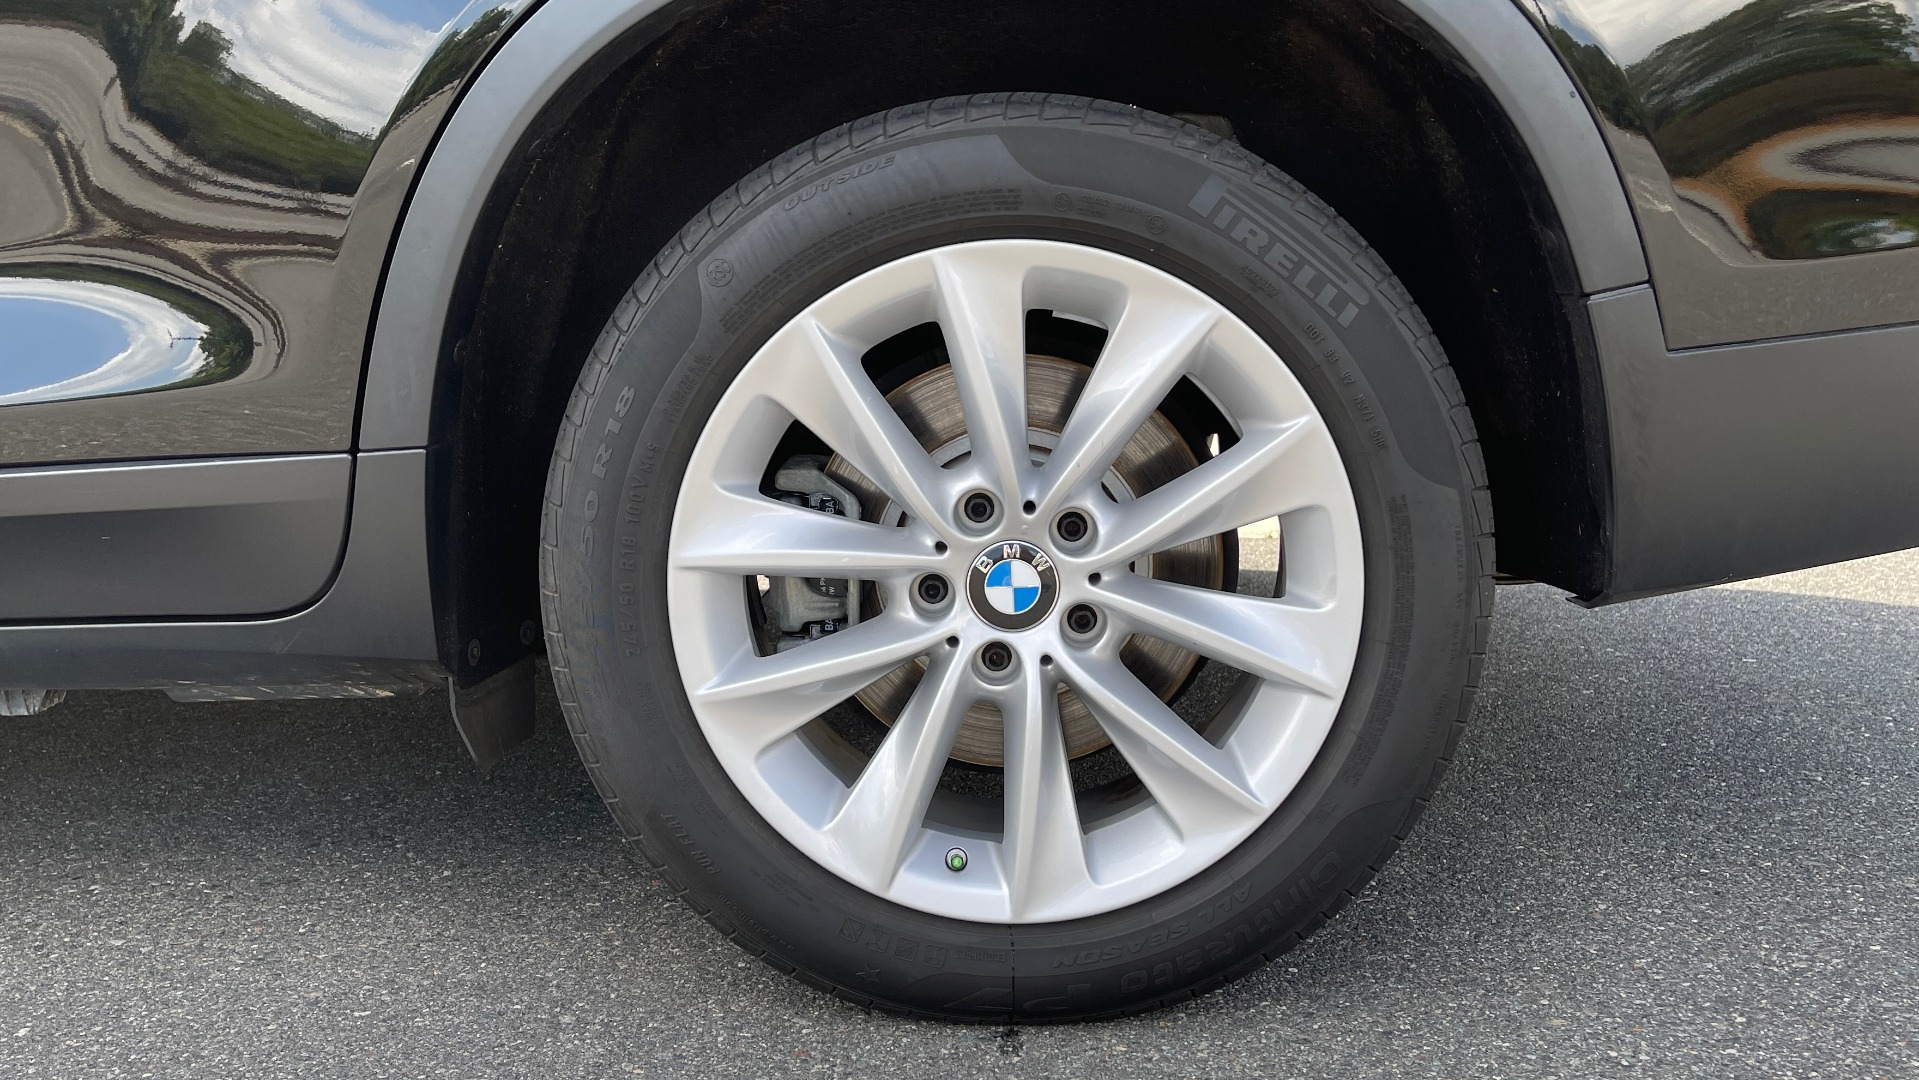 Used 2017 BMW X3 SDRIVE28I / DRVR ASST PKG / HTD STS / REARVIEW / 18IN WHEELS for sale $24,995 at Formula Imports in Charlotte NC 28227 77